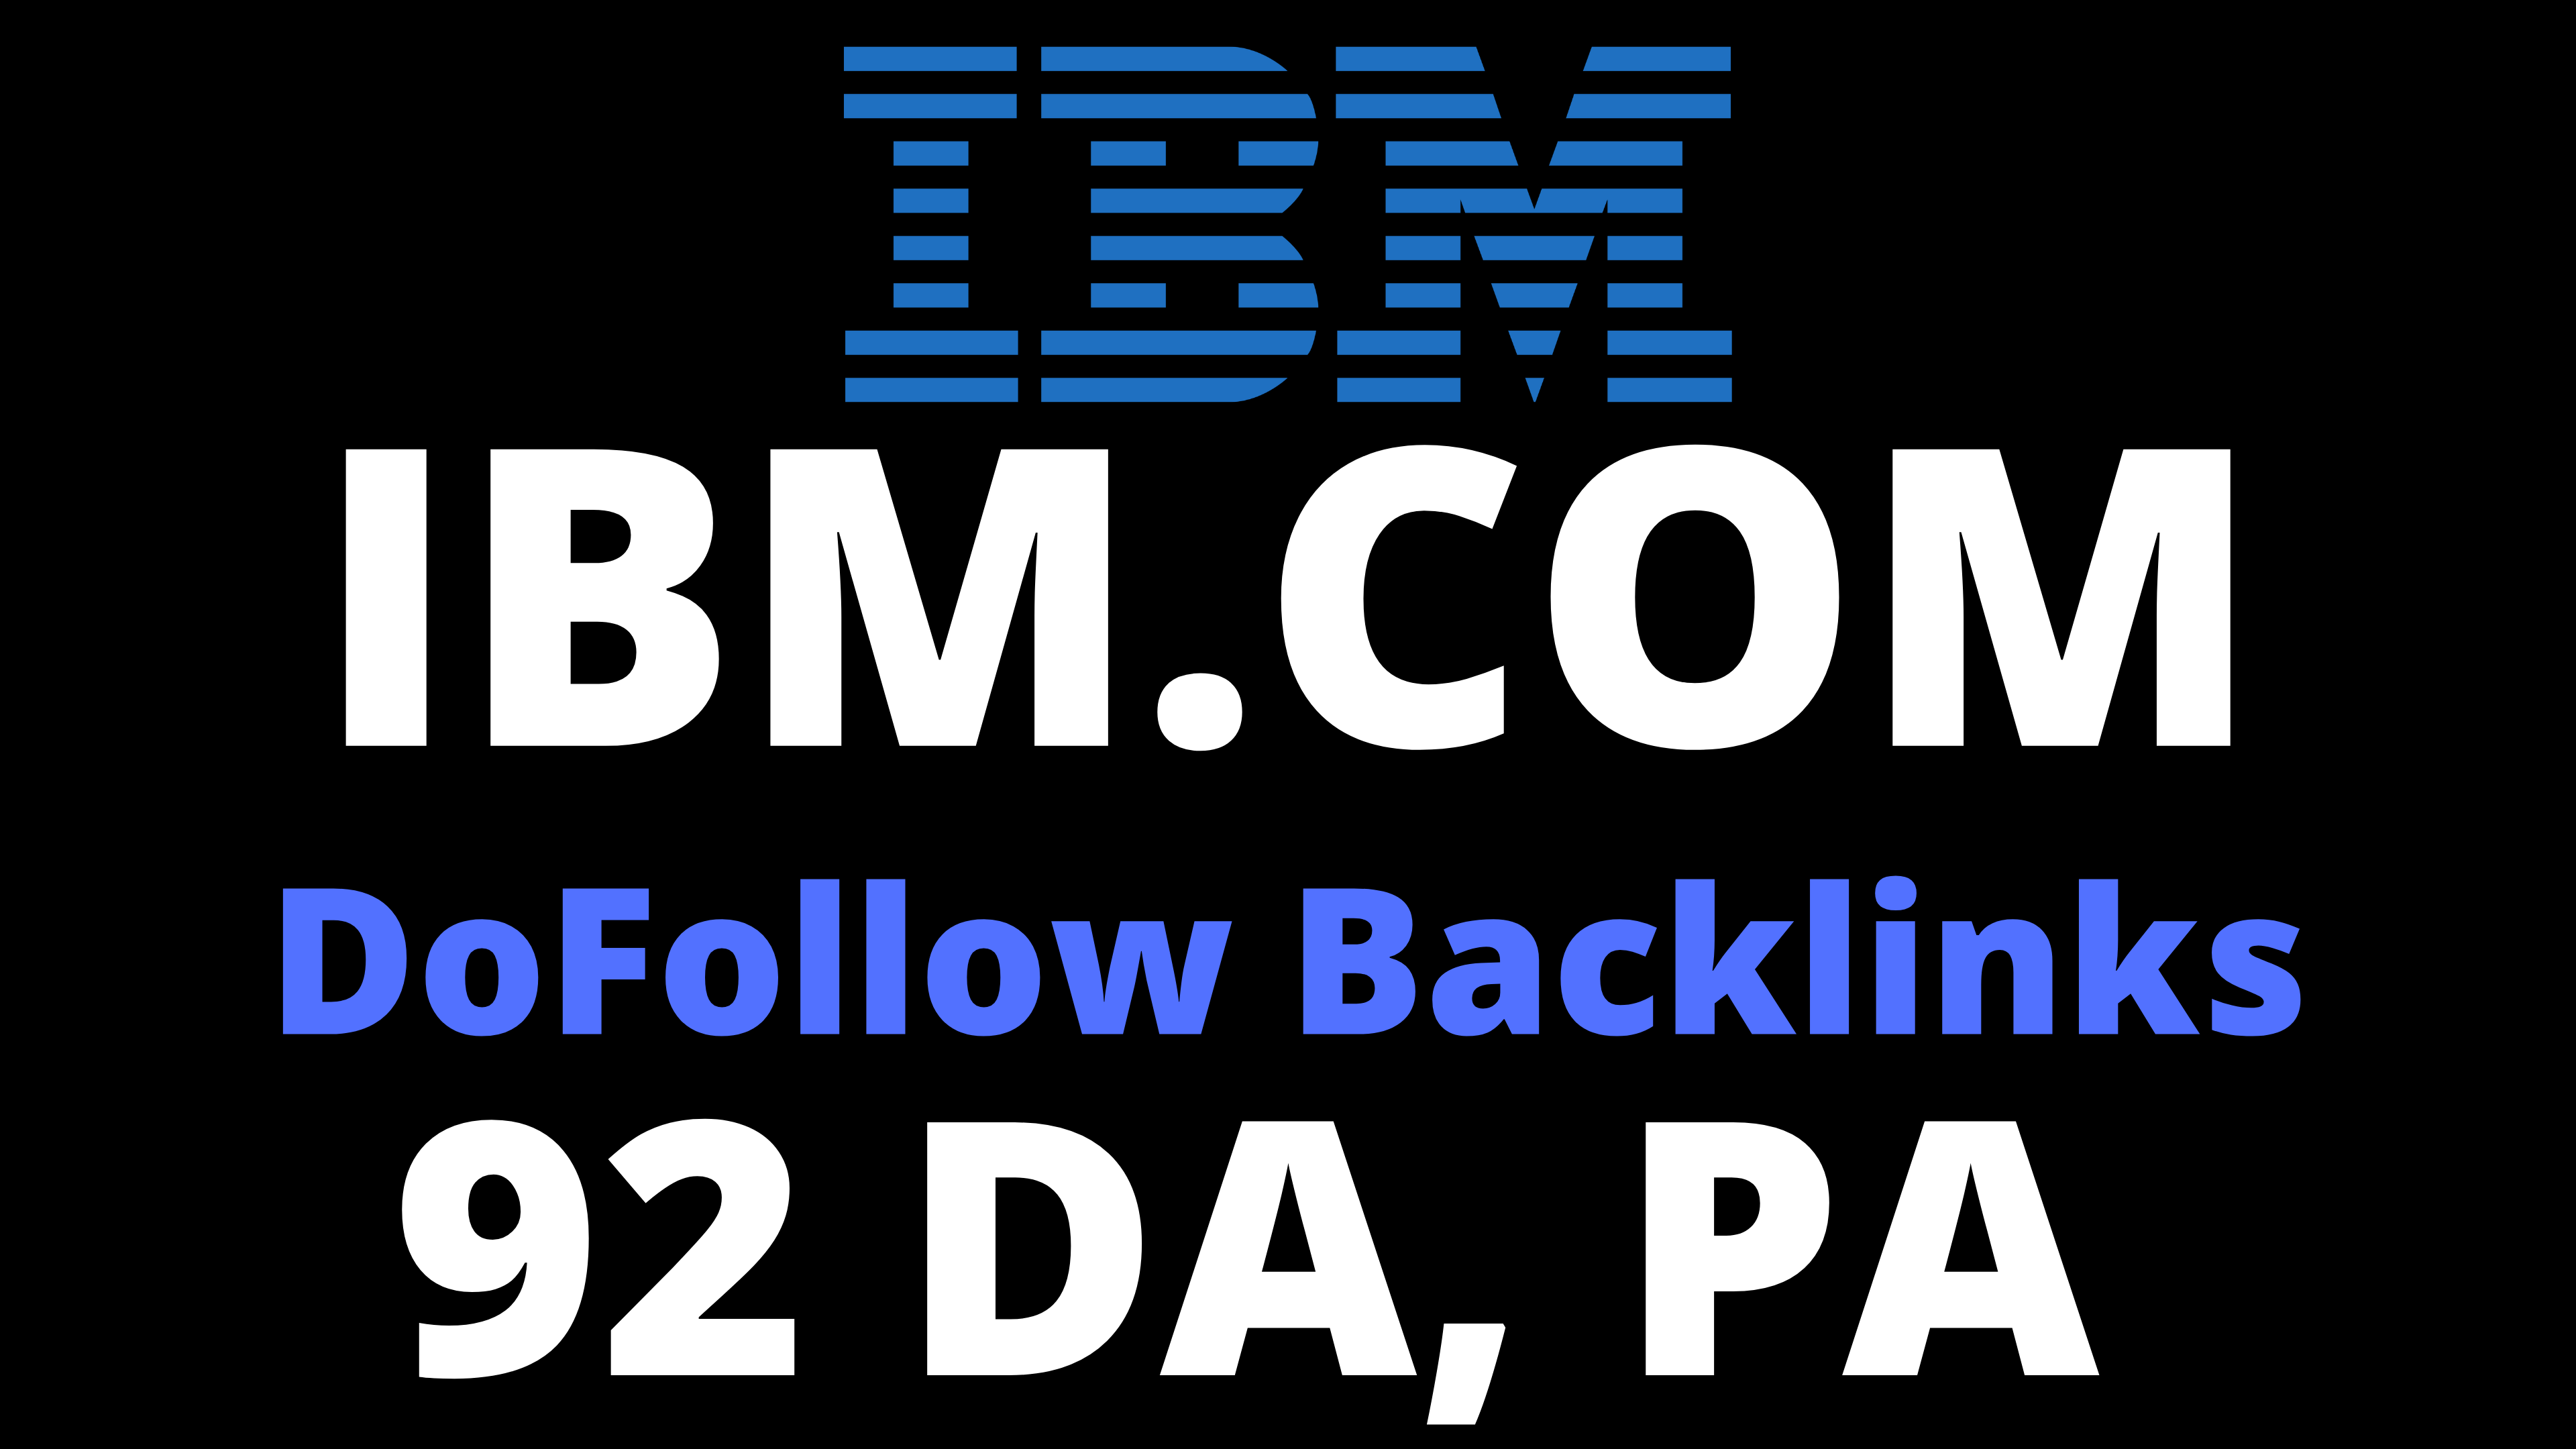 IBM 1 Dofollow Backlink High Quality 92 DA and PA White Hat SEO